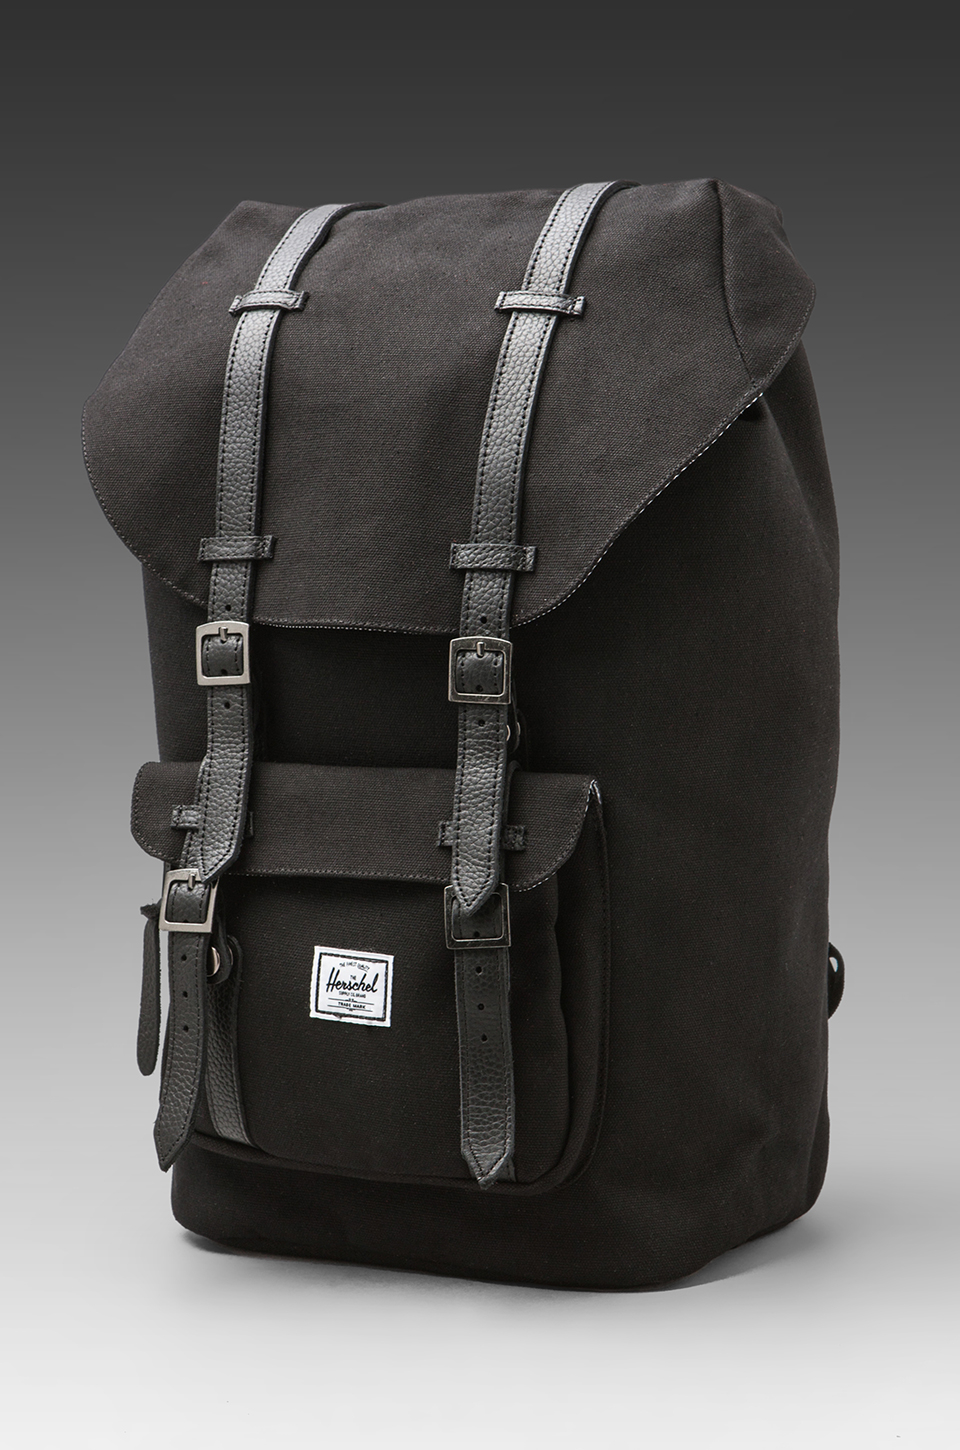 Lyst - Herschel Supply Co. Canvas Collection Little America Backpack ... 6d08820386